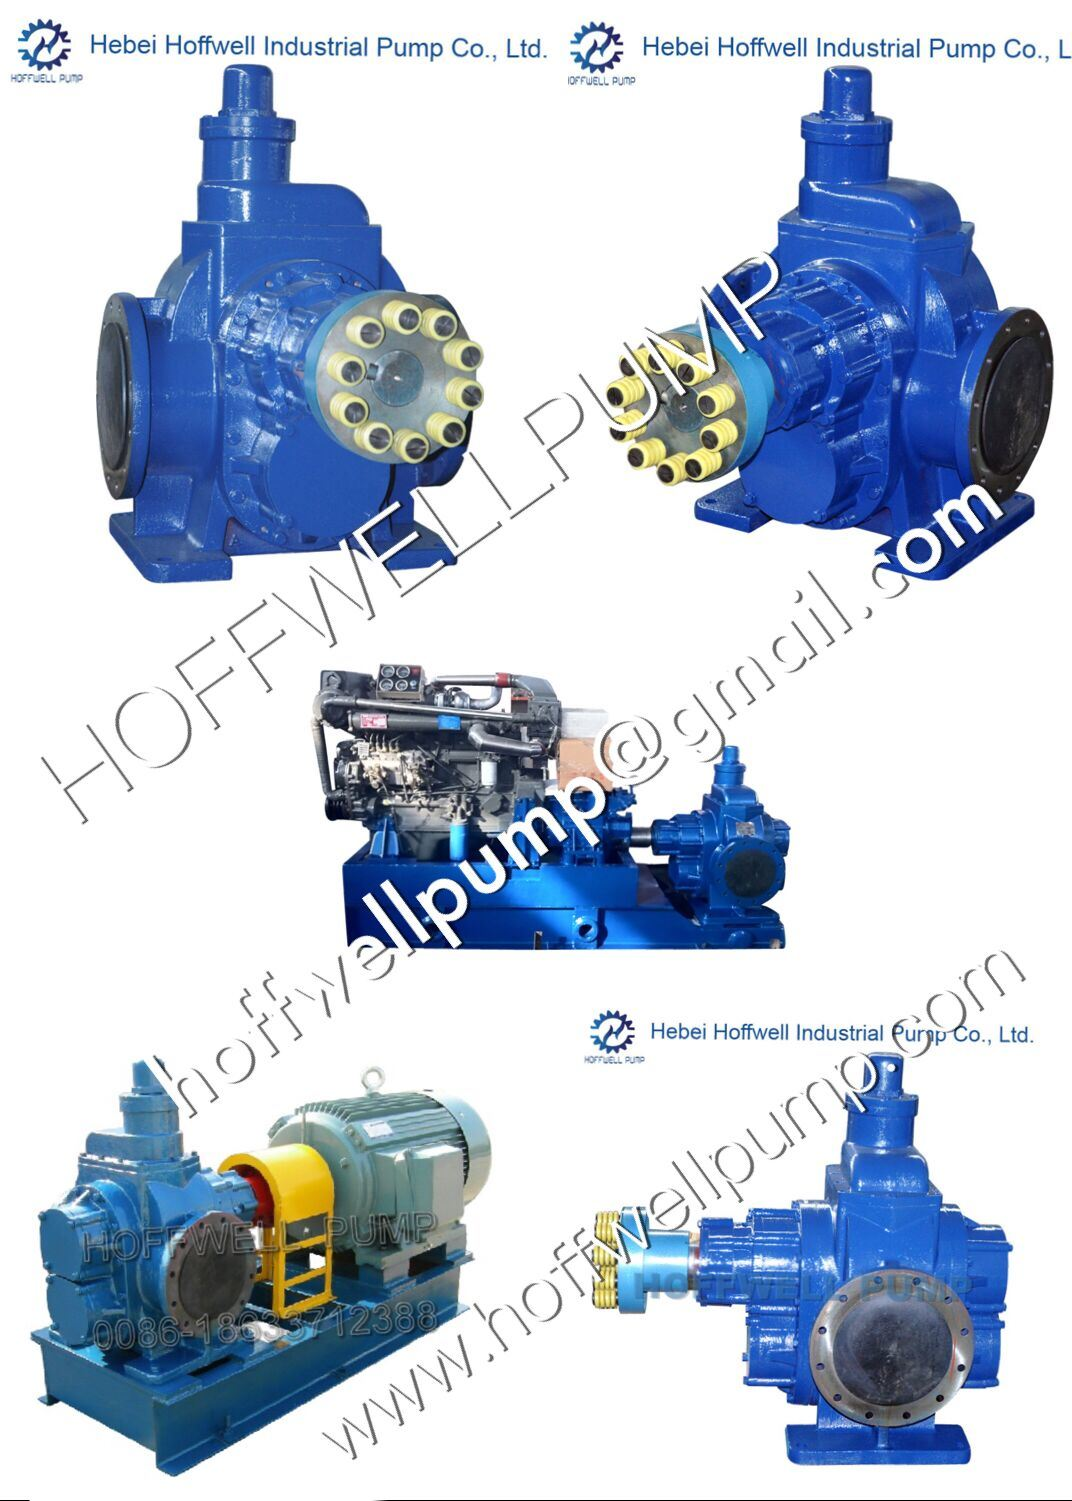 KCB gear pump Usual Troubles and Obviating Ways